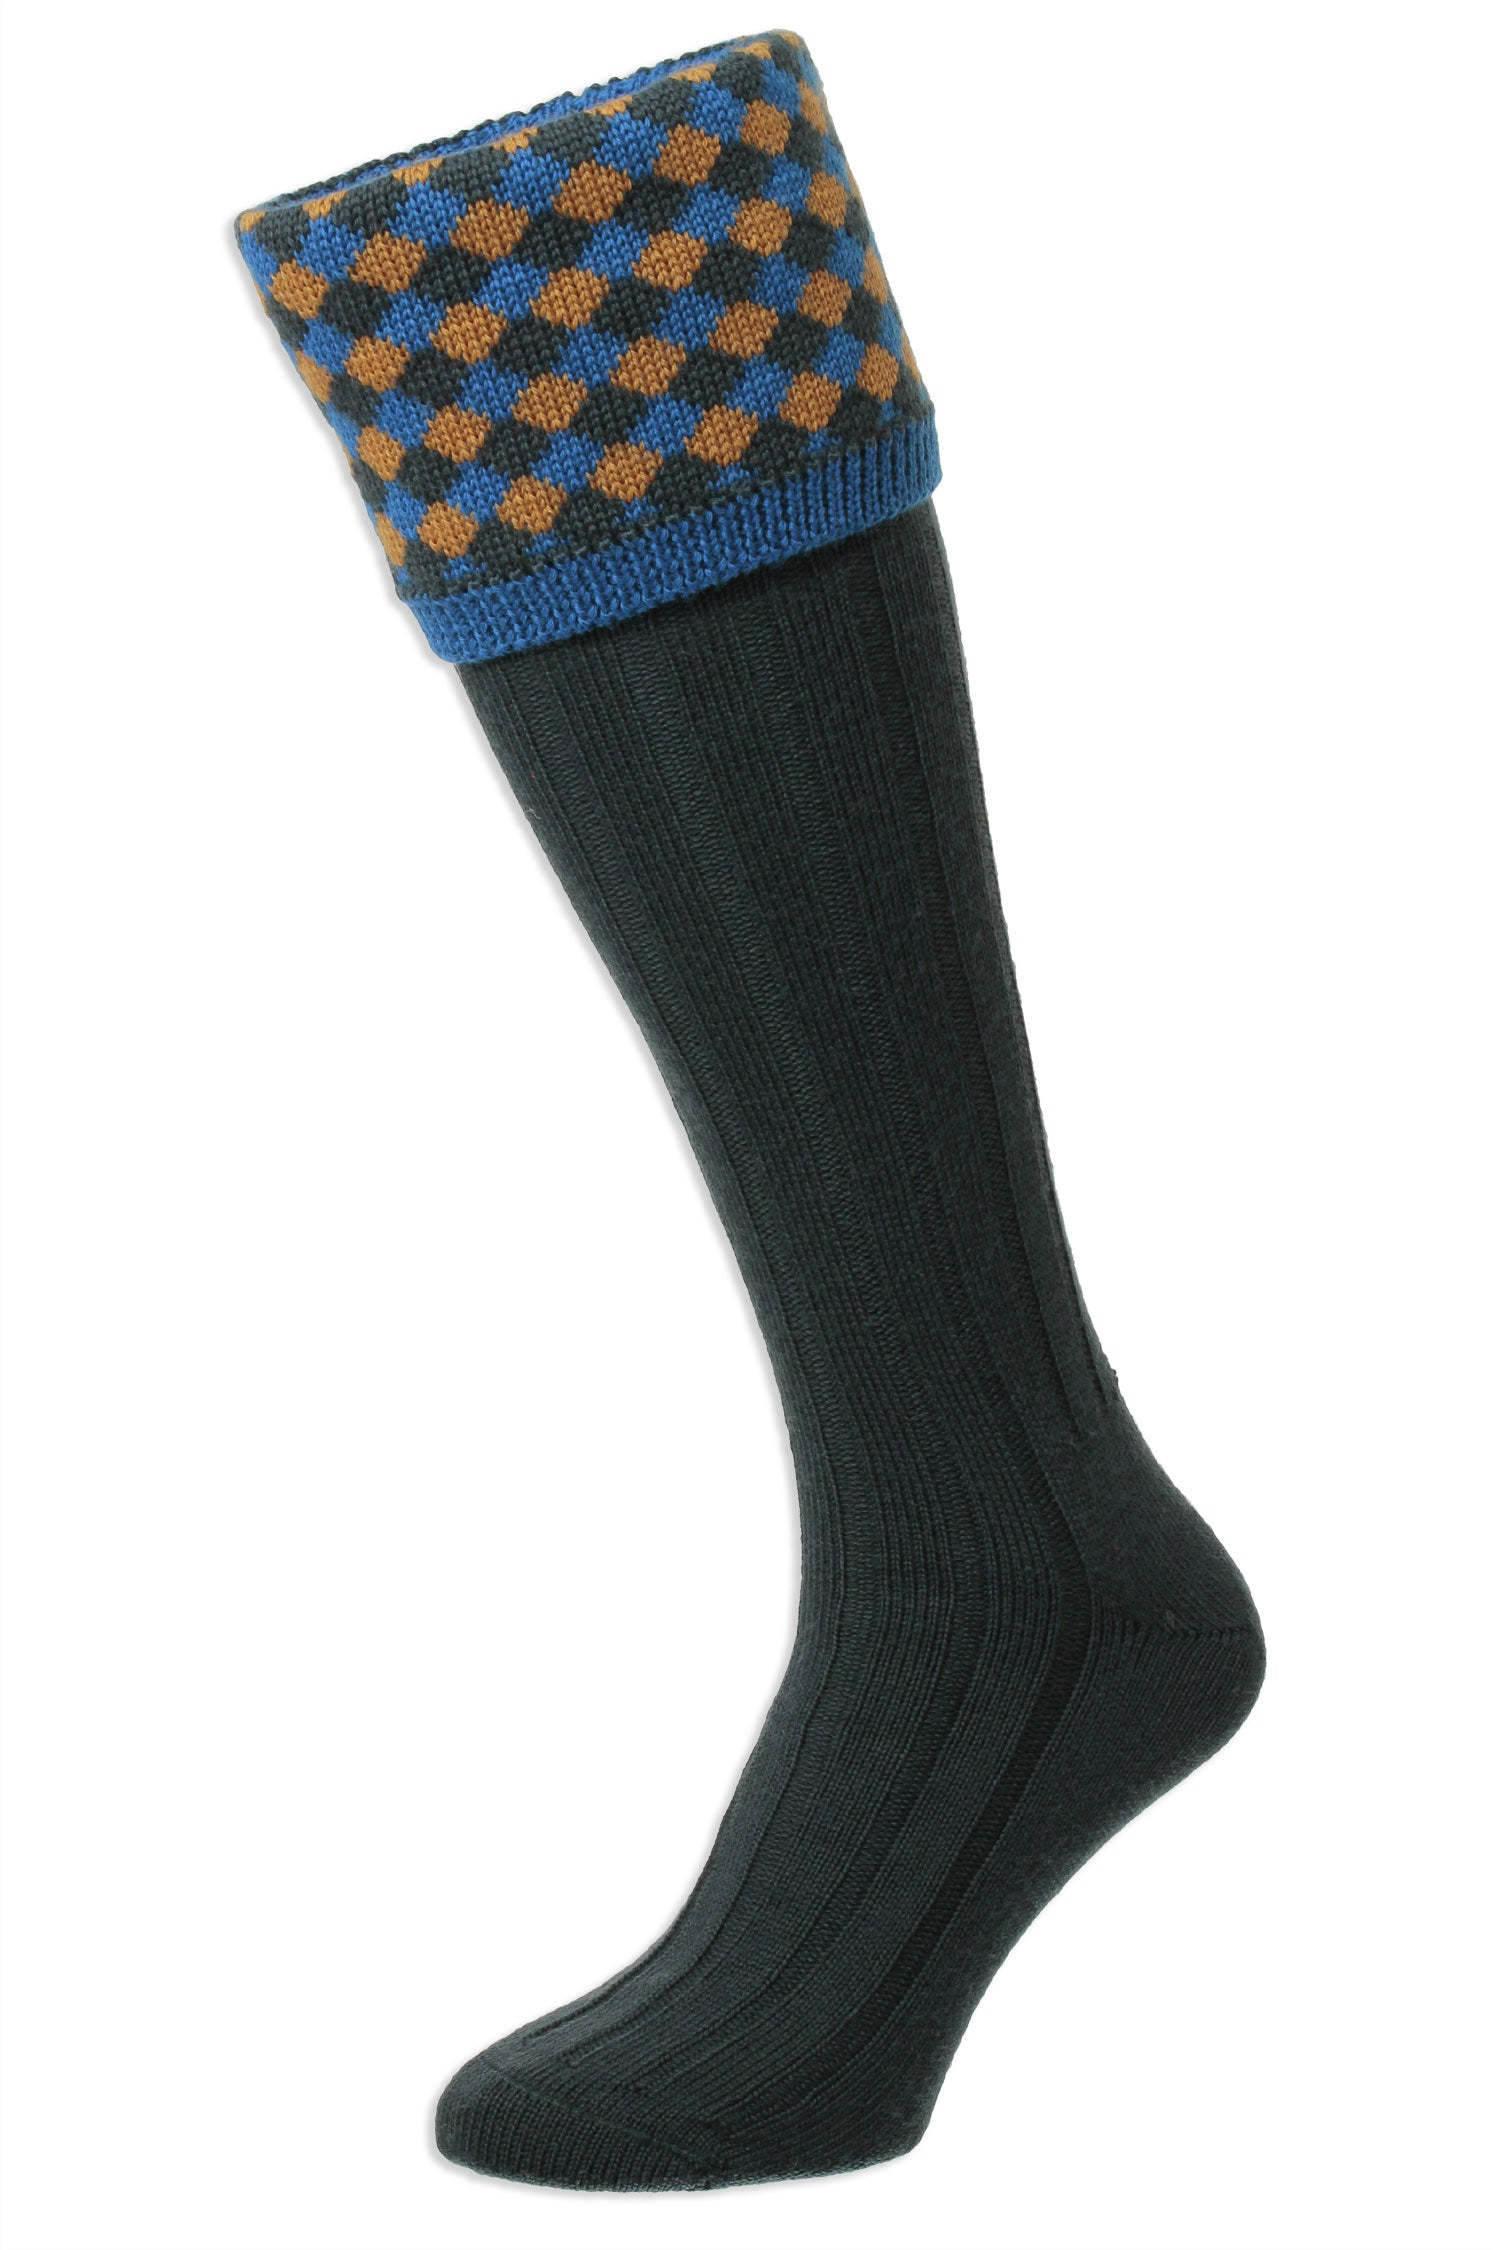 Racing Green HJ Hall Hadleigh Shooting Sock | Harlequin Top